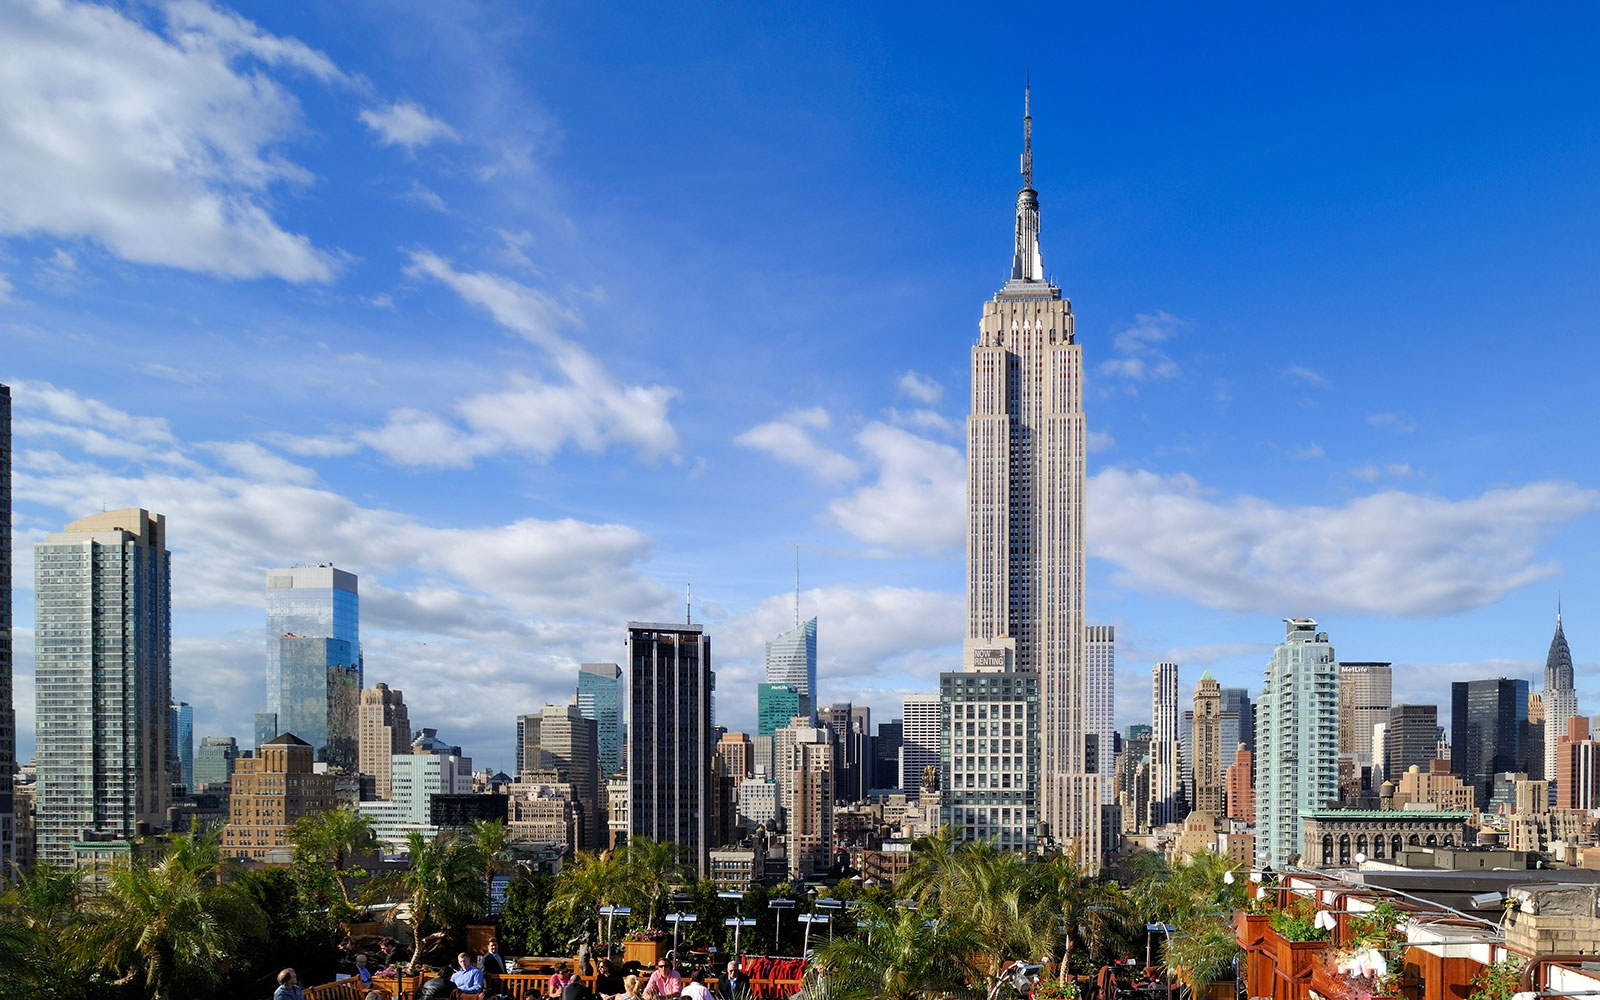 Empire State Building Attraction